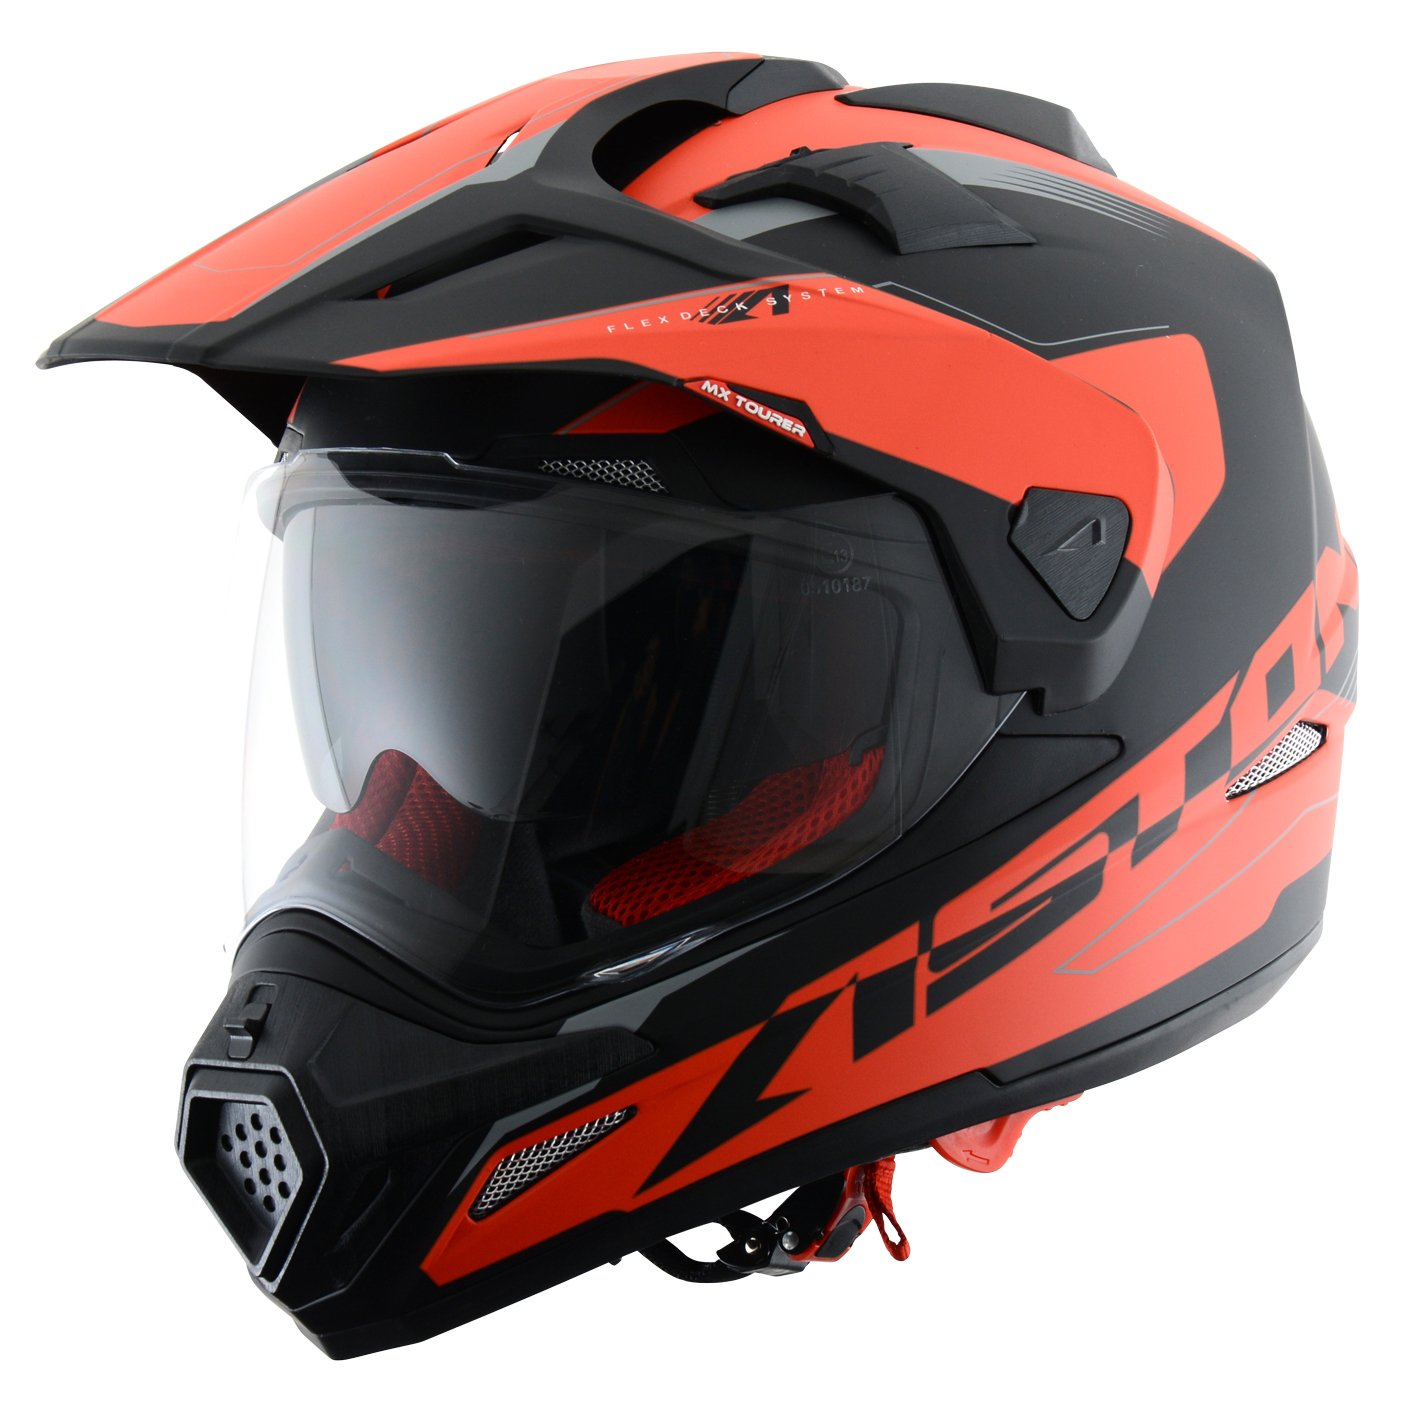 Astone Helmets Tourer Adventure, color Rojo, talla M: Amazon.es: Coche y moto